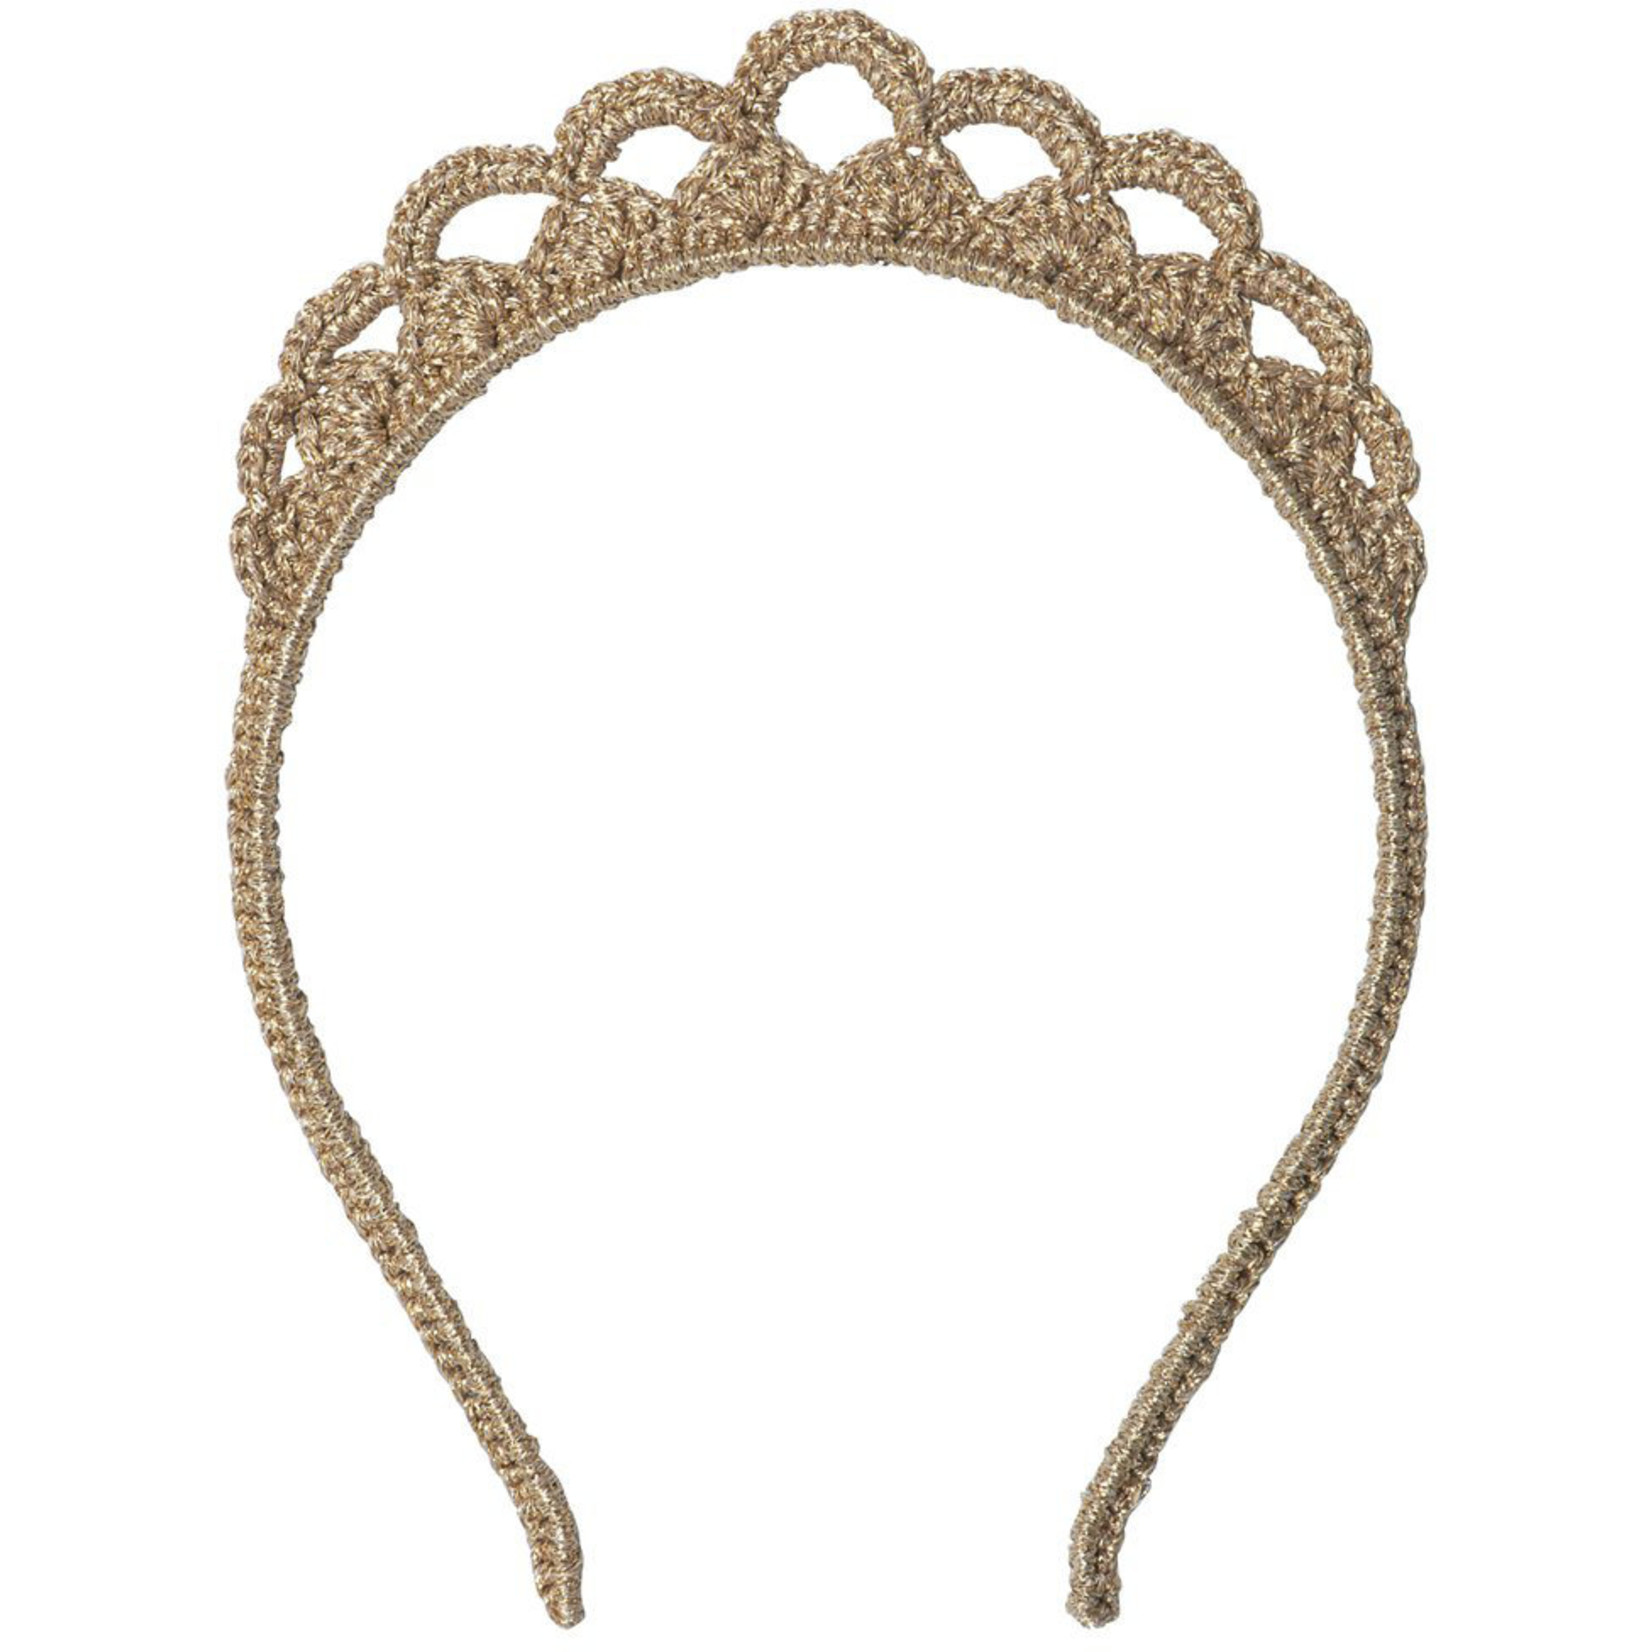 MAILEG HAIRBAND TIARA IN GOLD